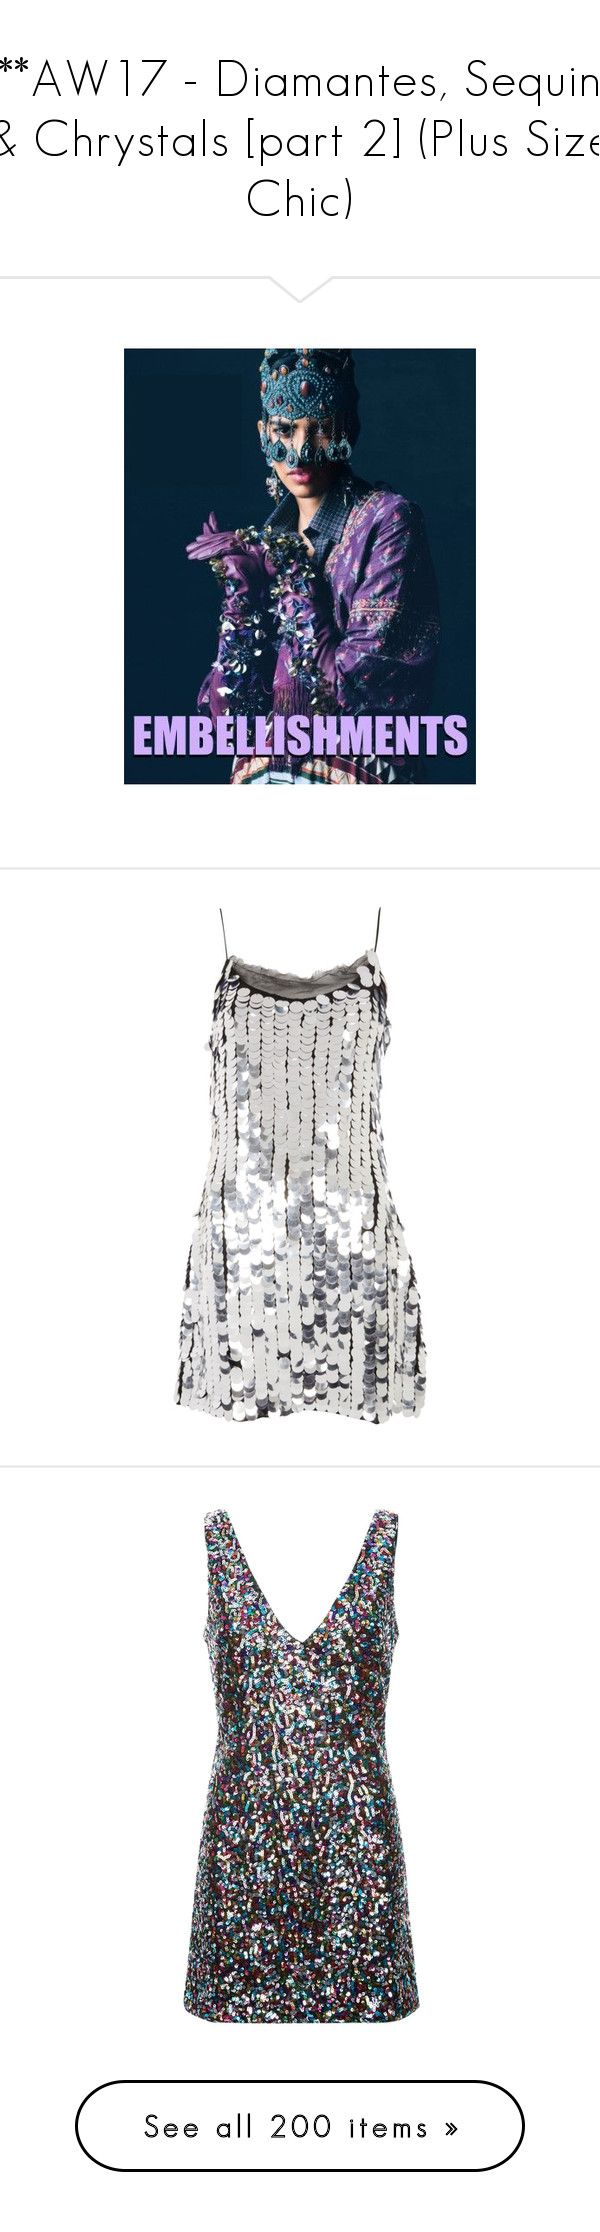 """""""***AW17 - Diamantes, Sequins & Chrystals [part 2] (Plus Size Chic)"""" by foolsuk ❤ liked on Polyvore featuring dresses, short sequin cocktail dresses, sequin mini dress, sequin party dresses, sequin cocktail dresses, white cocktail dress, intimates, hosiery, socks and shoes"""